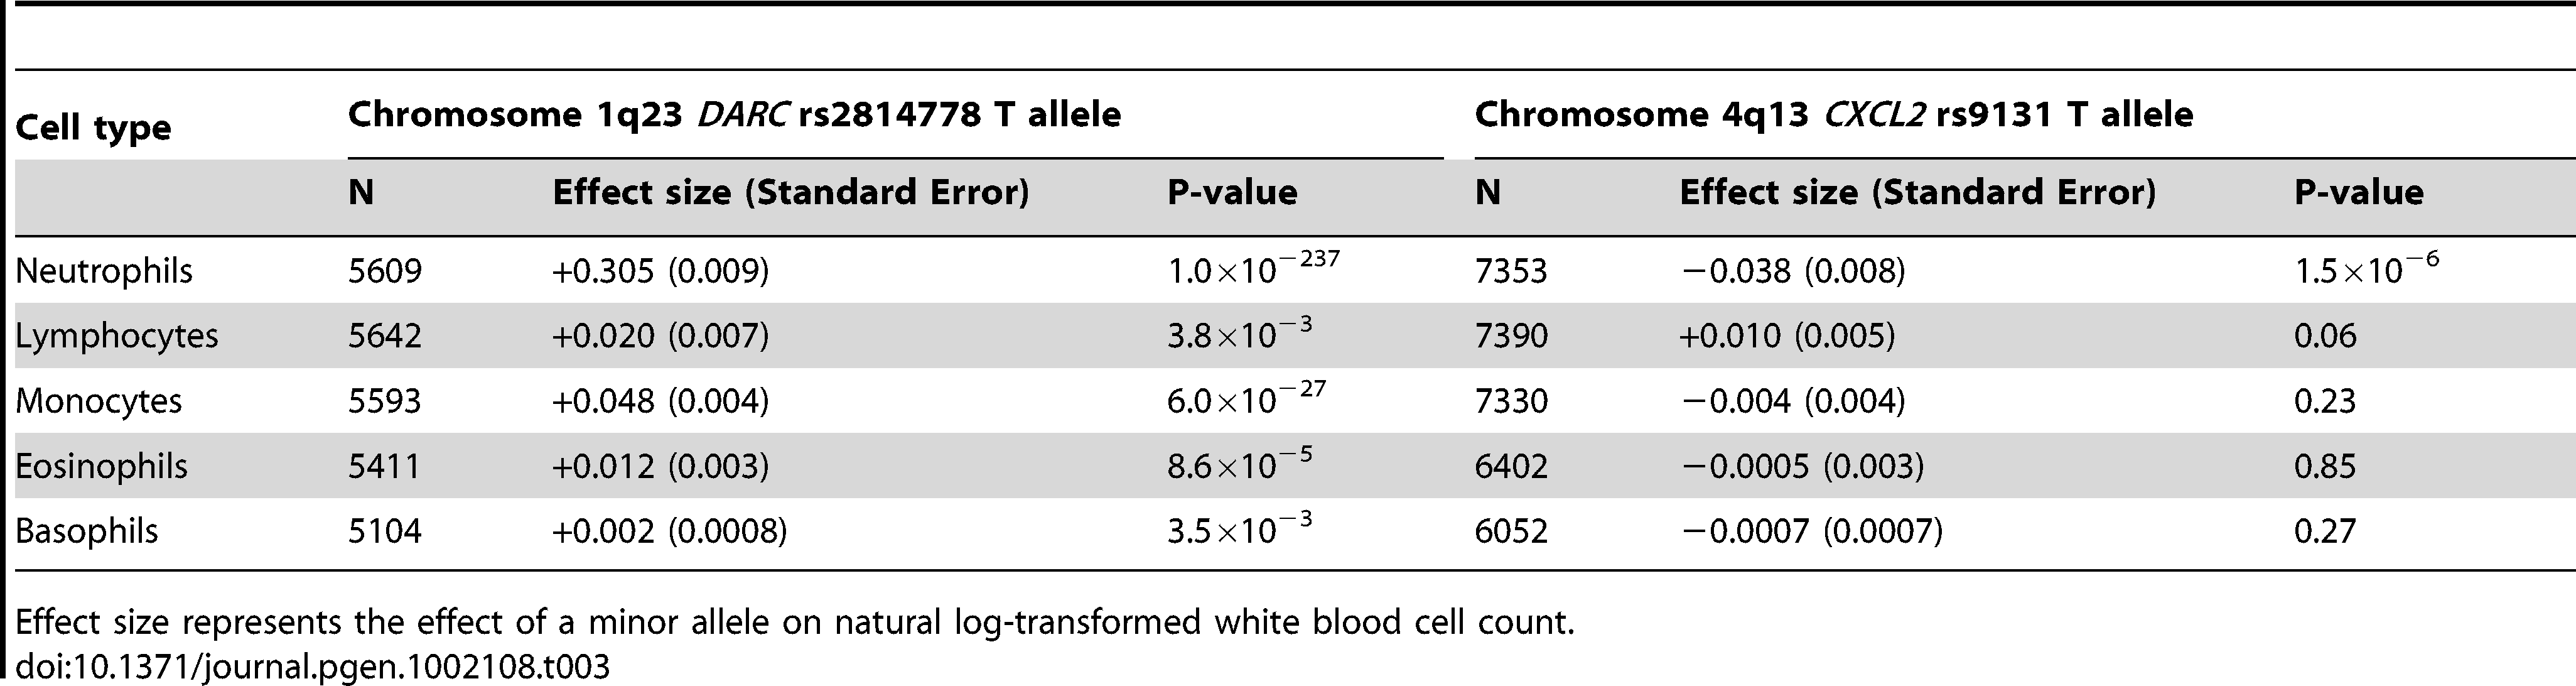 Meta-analysis results of genome-wide significant SNPs for white blood cell count subtypes.